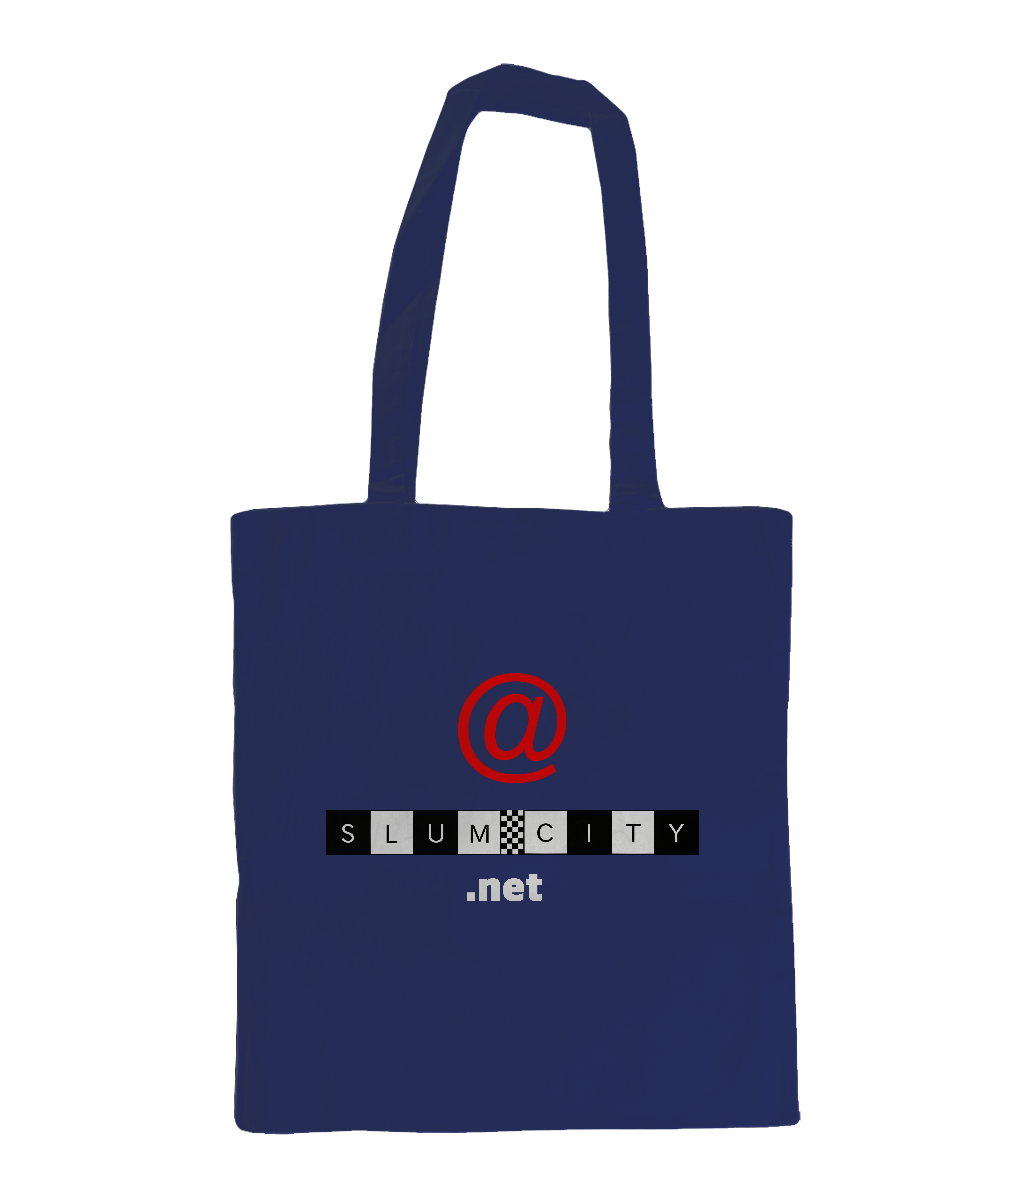 @ Slum City - tote bag